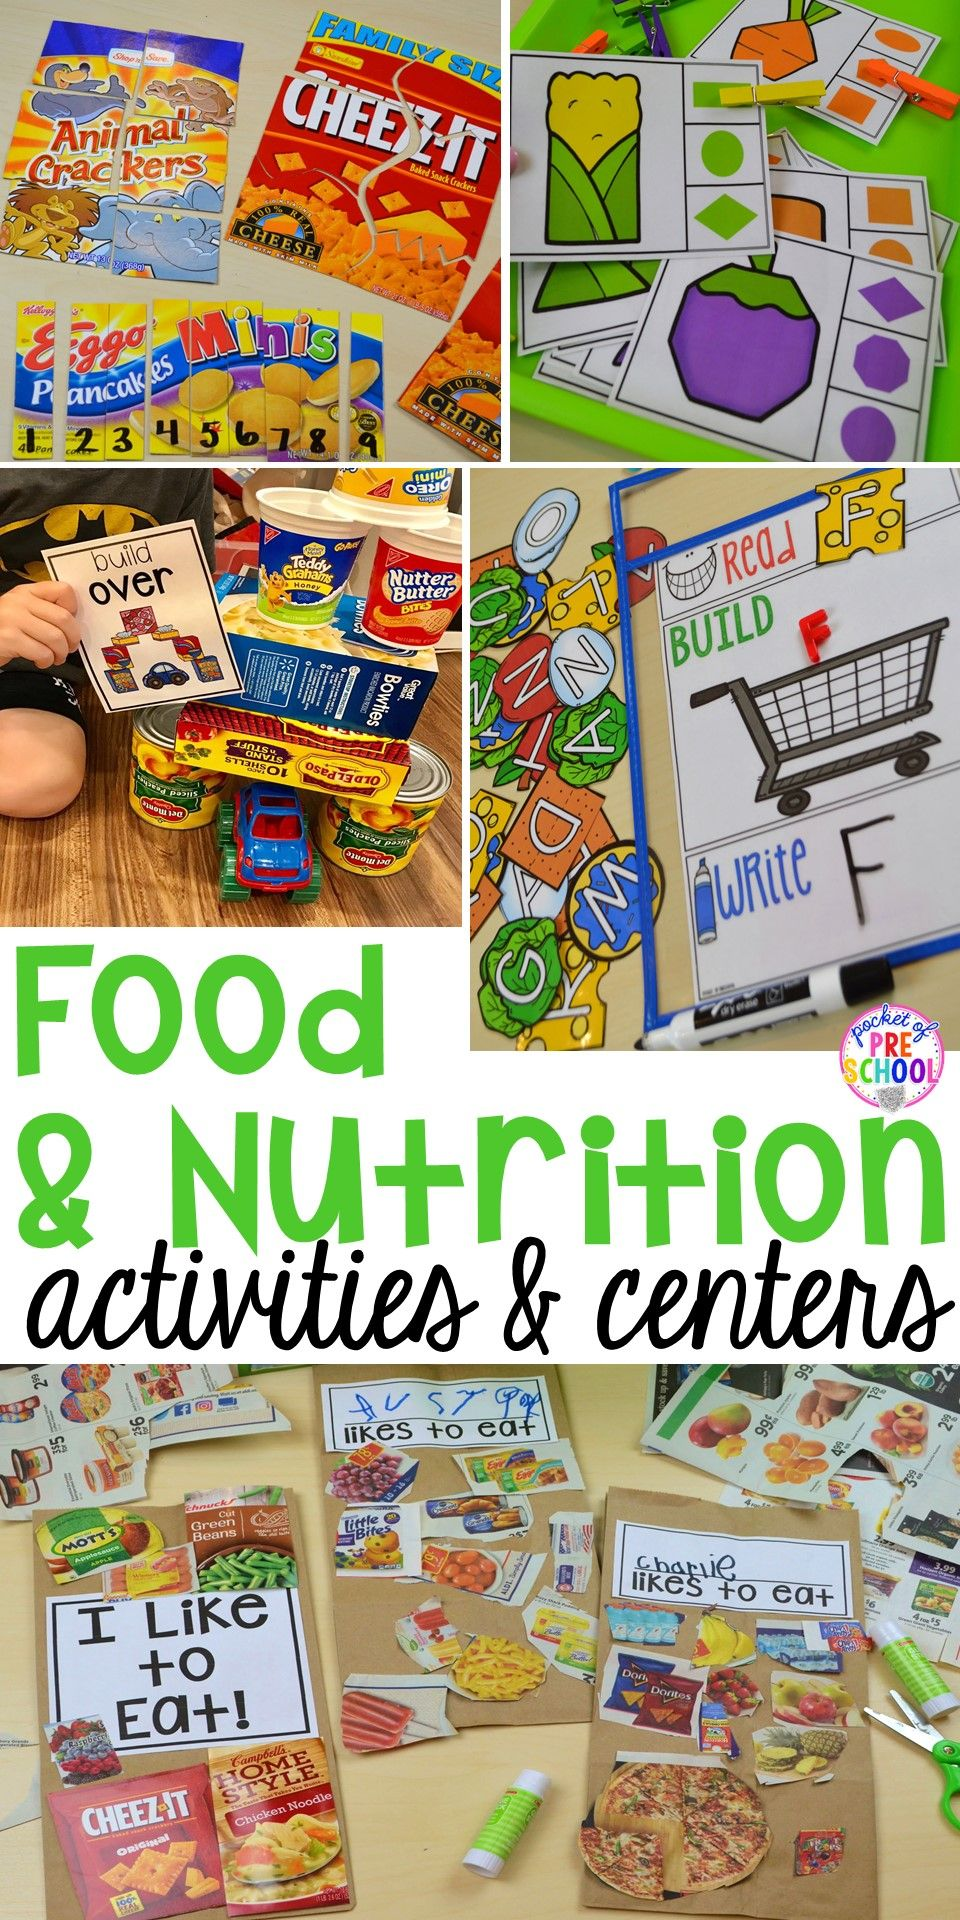 Food and nutrition centers for preschool, prek, and